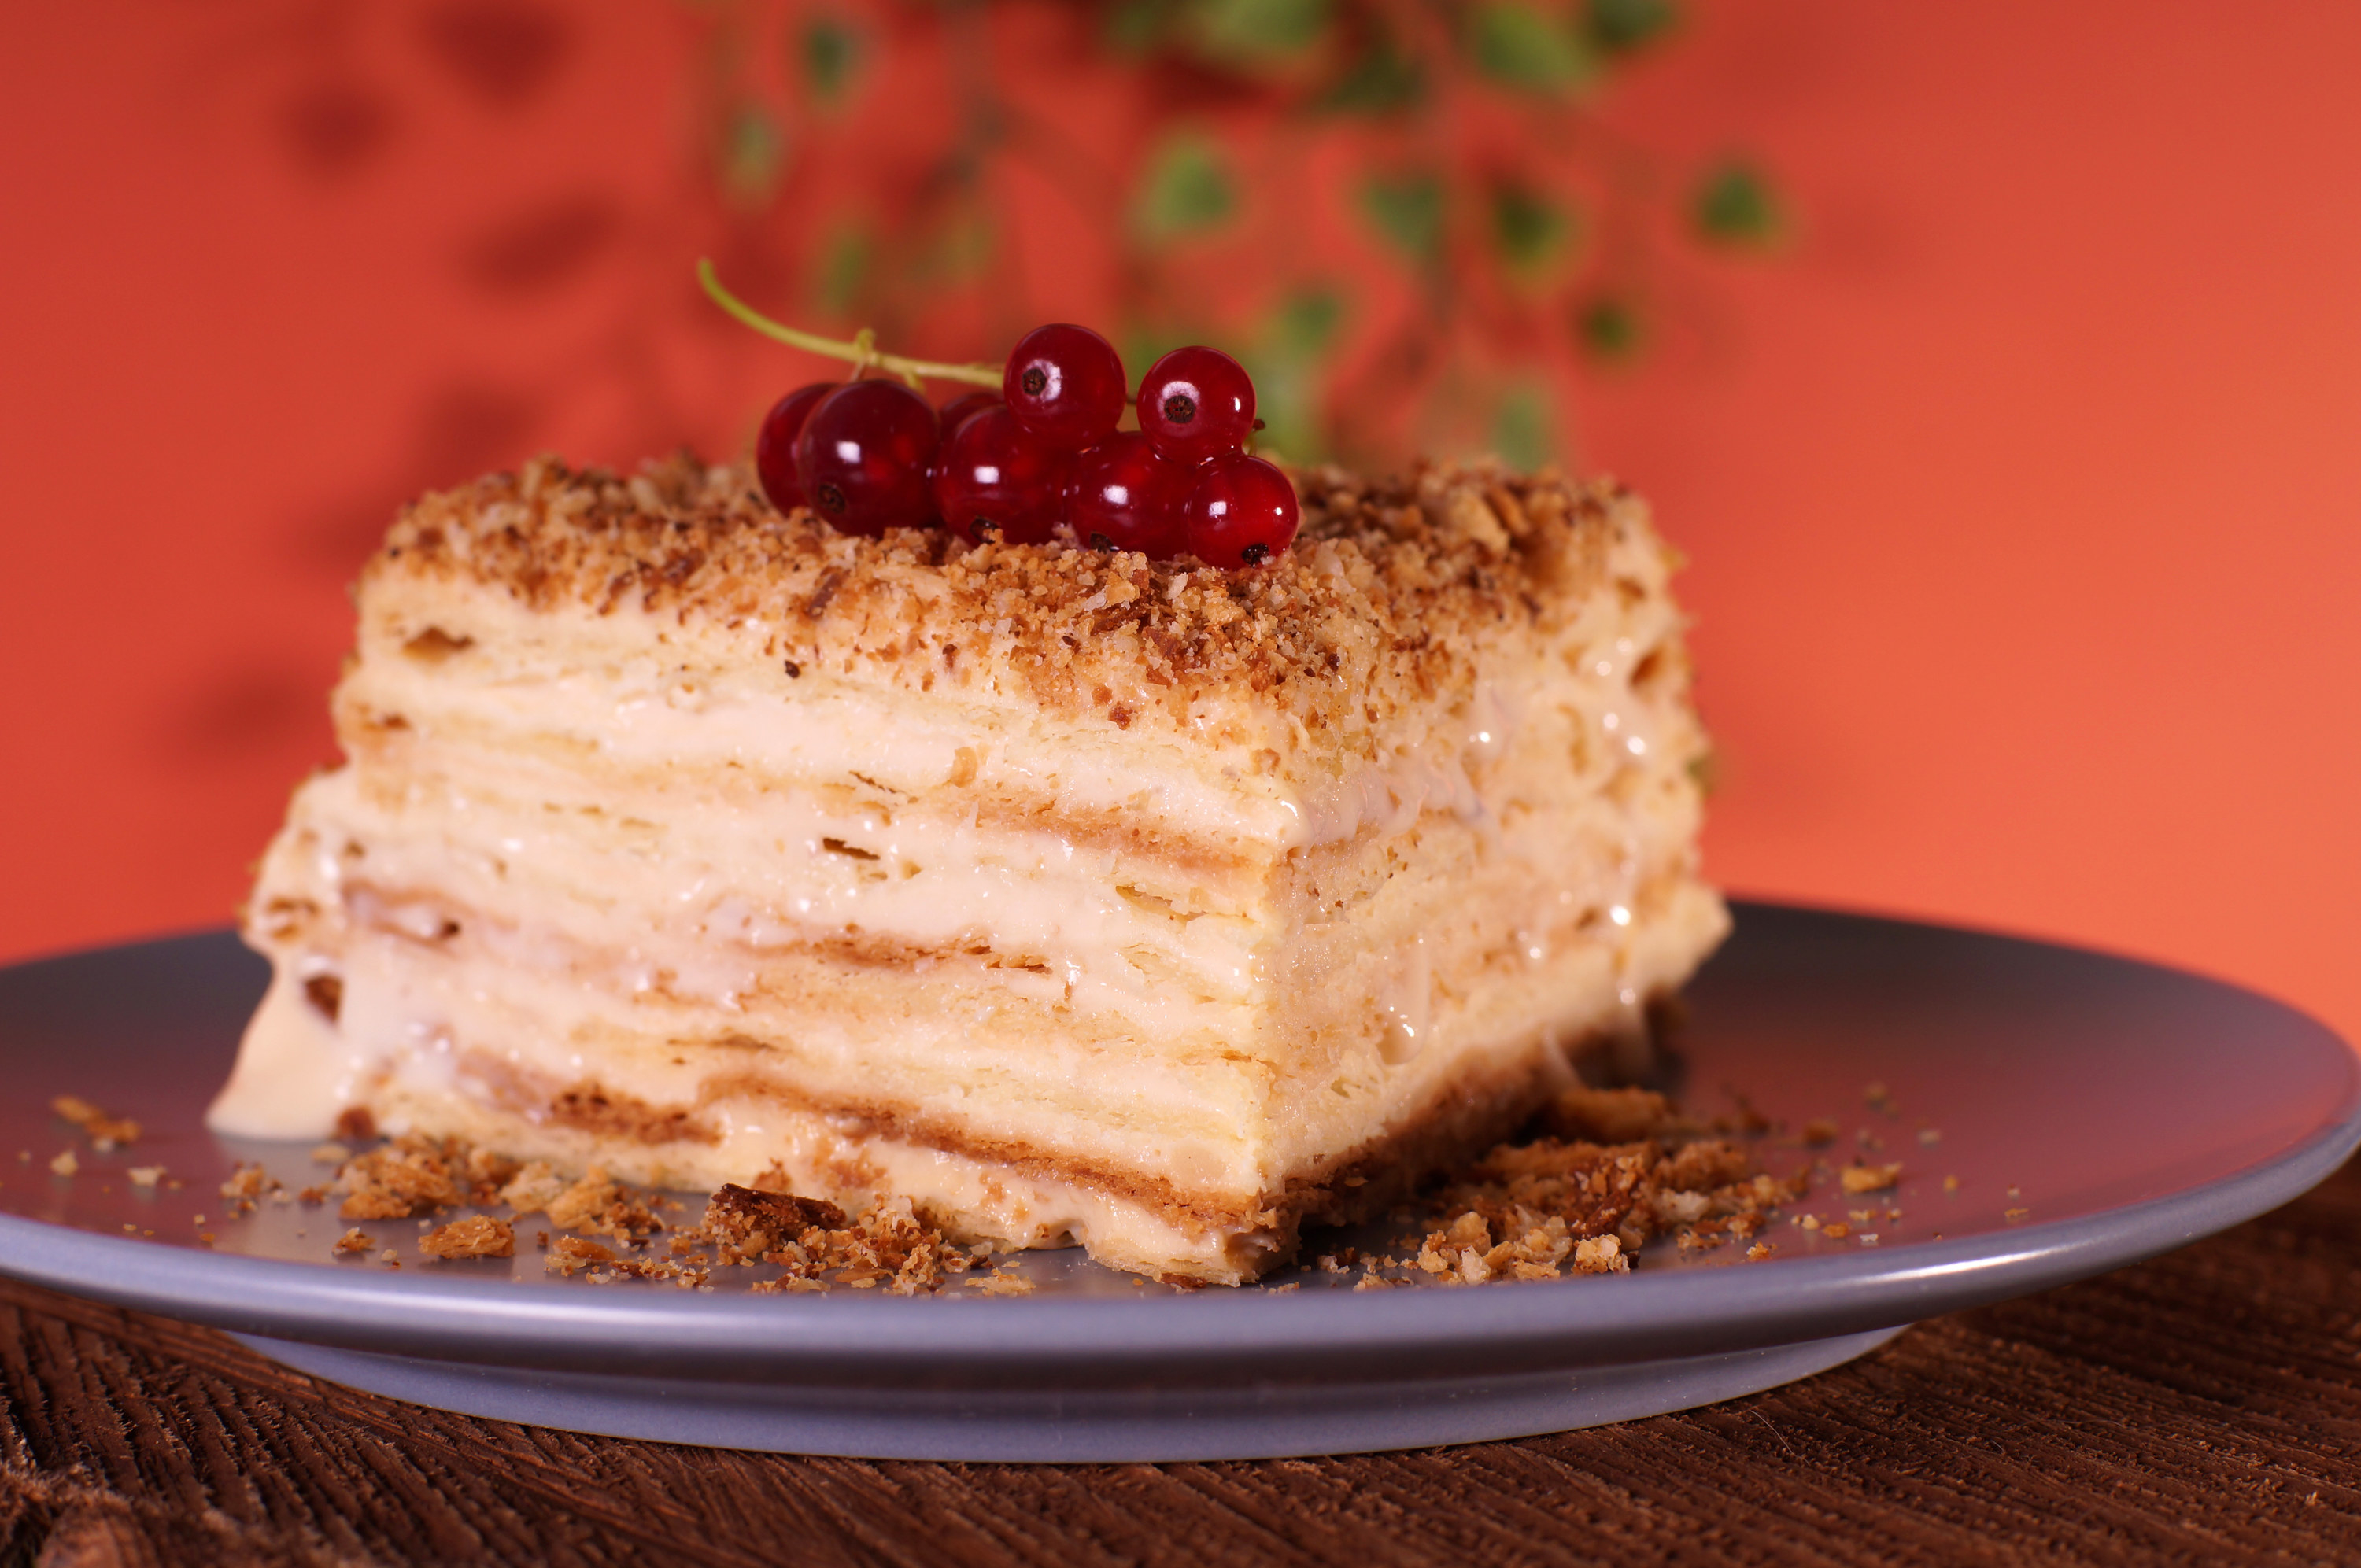 Layered cake with cream layers and a textured topping.